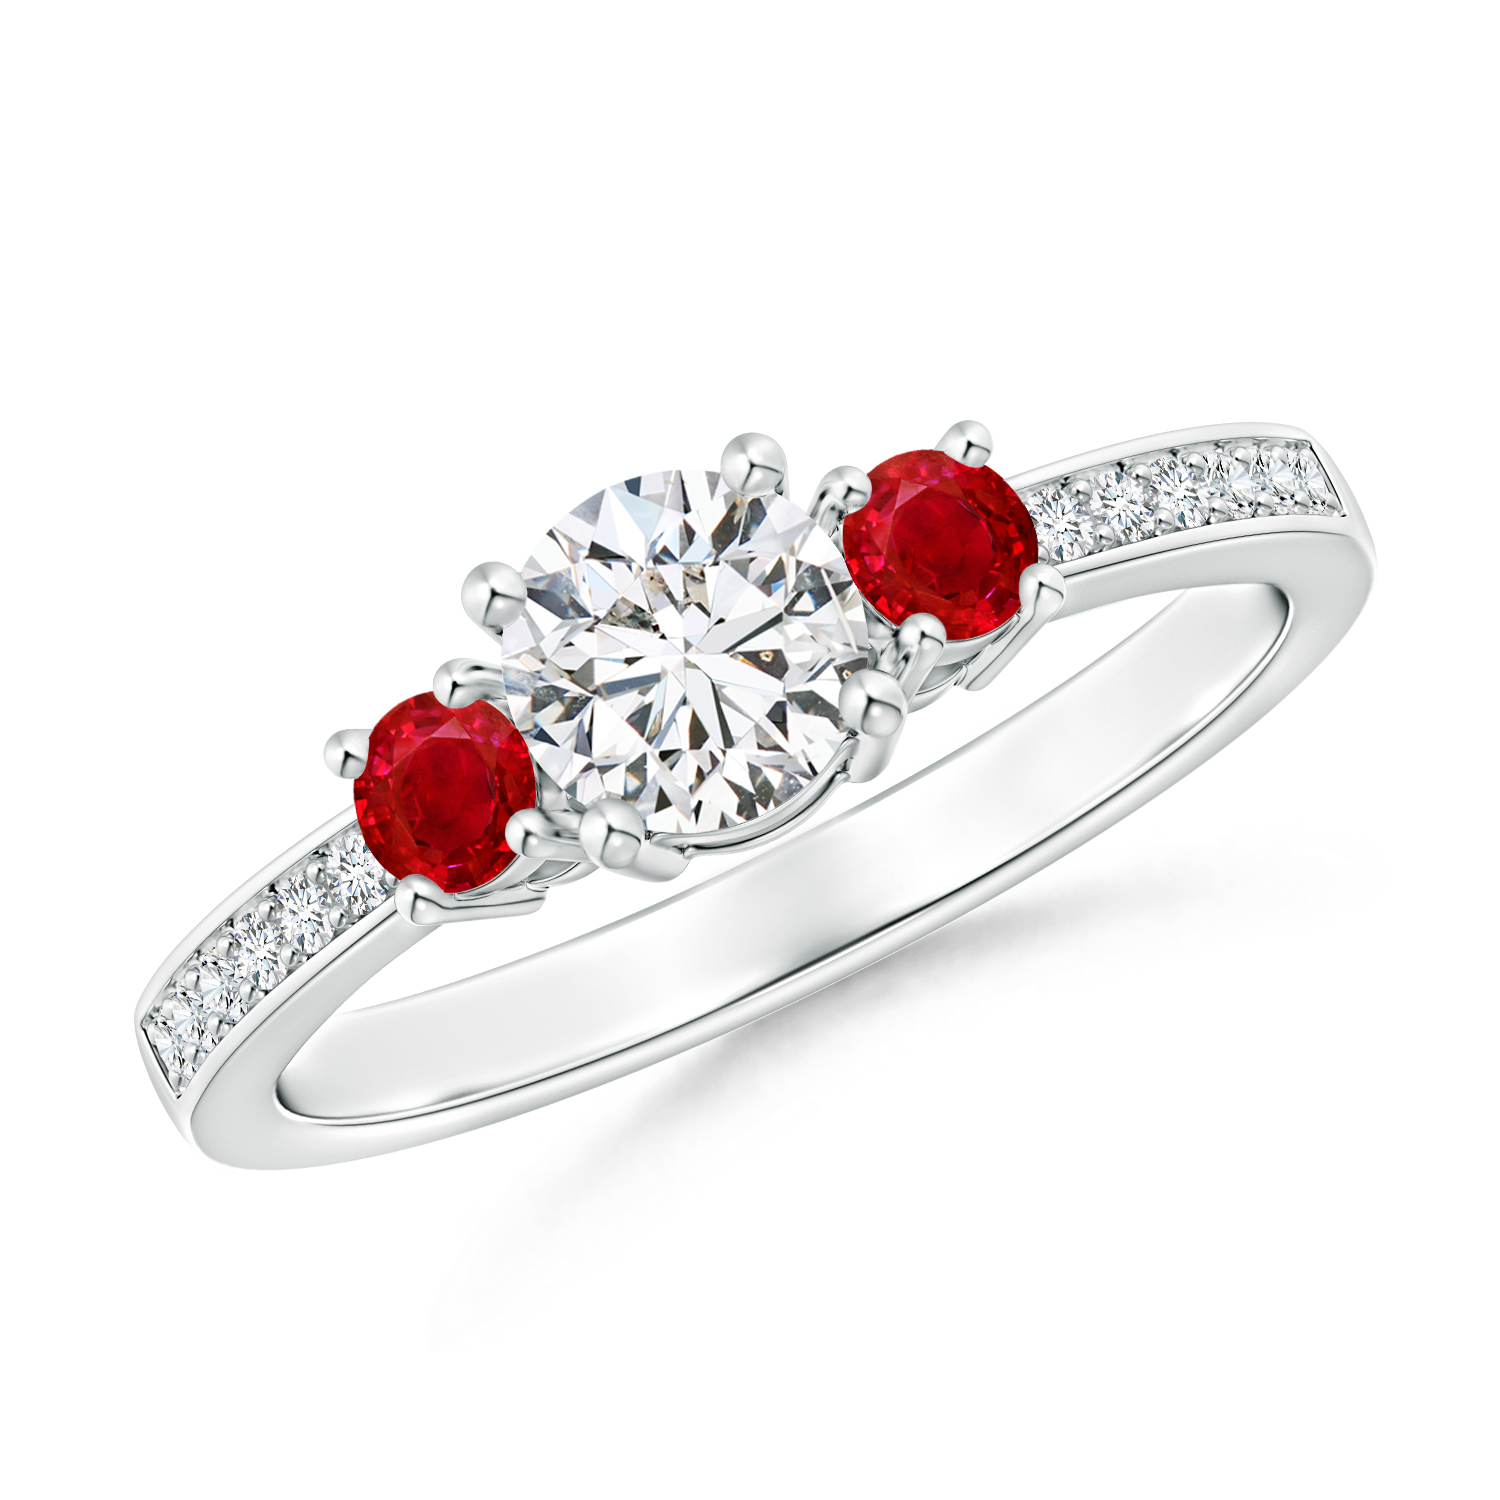 Classic Three Stone Diamond and Ruby Ring - Angara.com